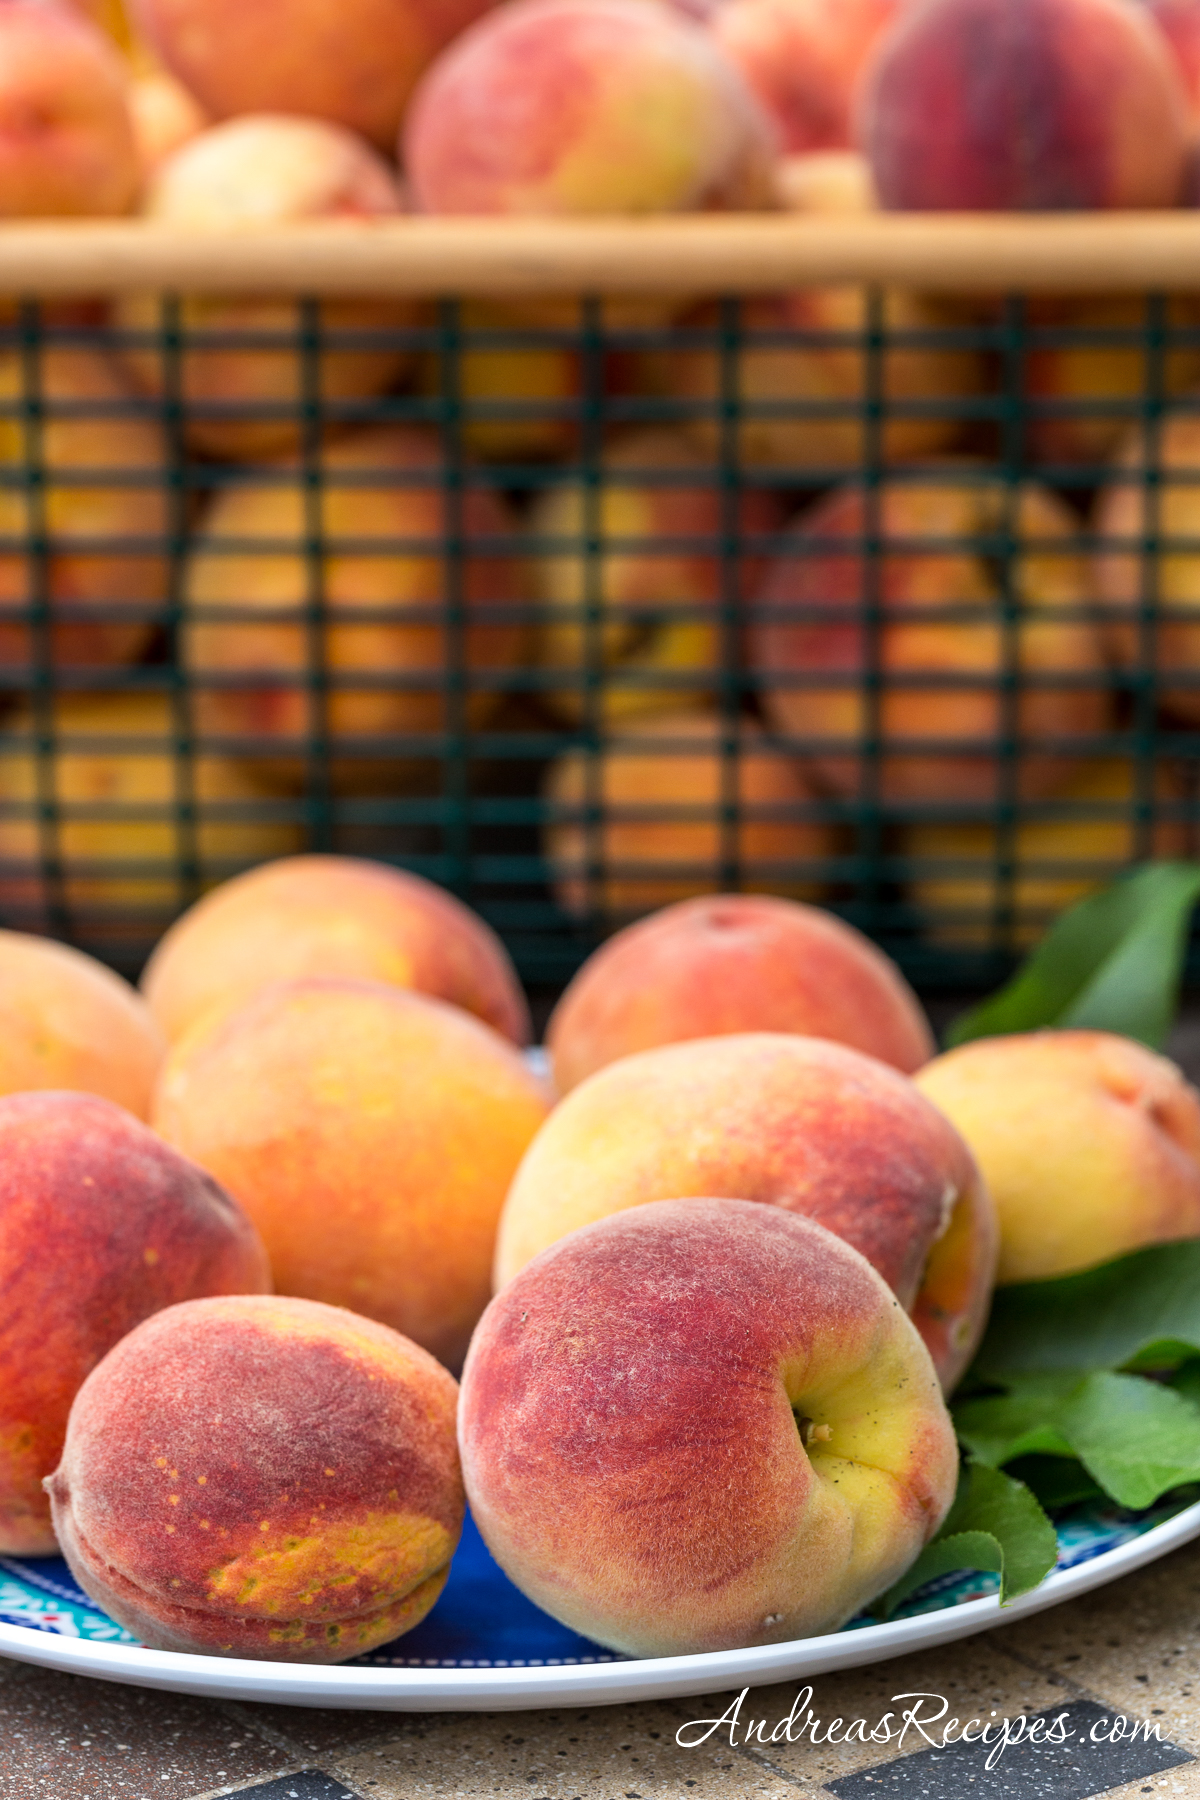 Loring peaches from our backyard - Andrea Meyers